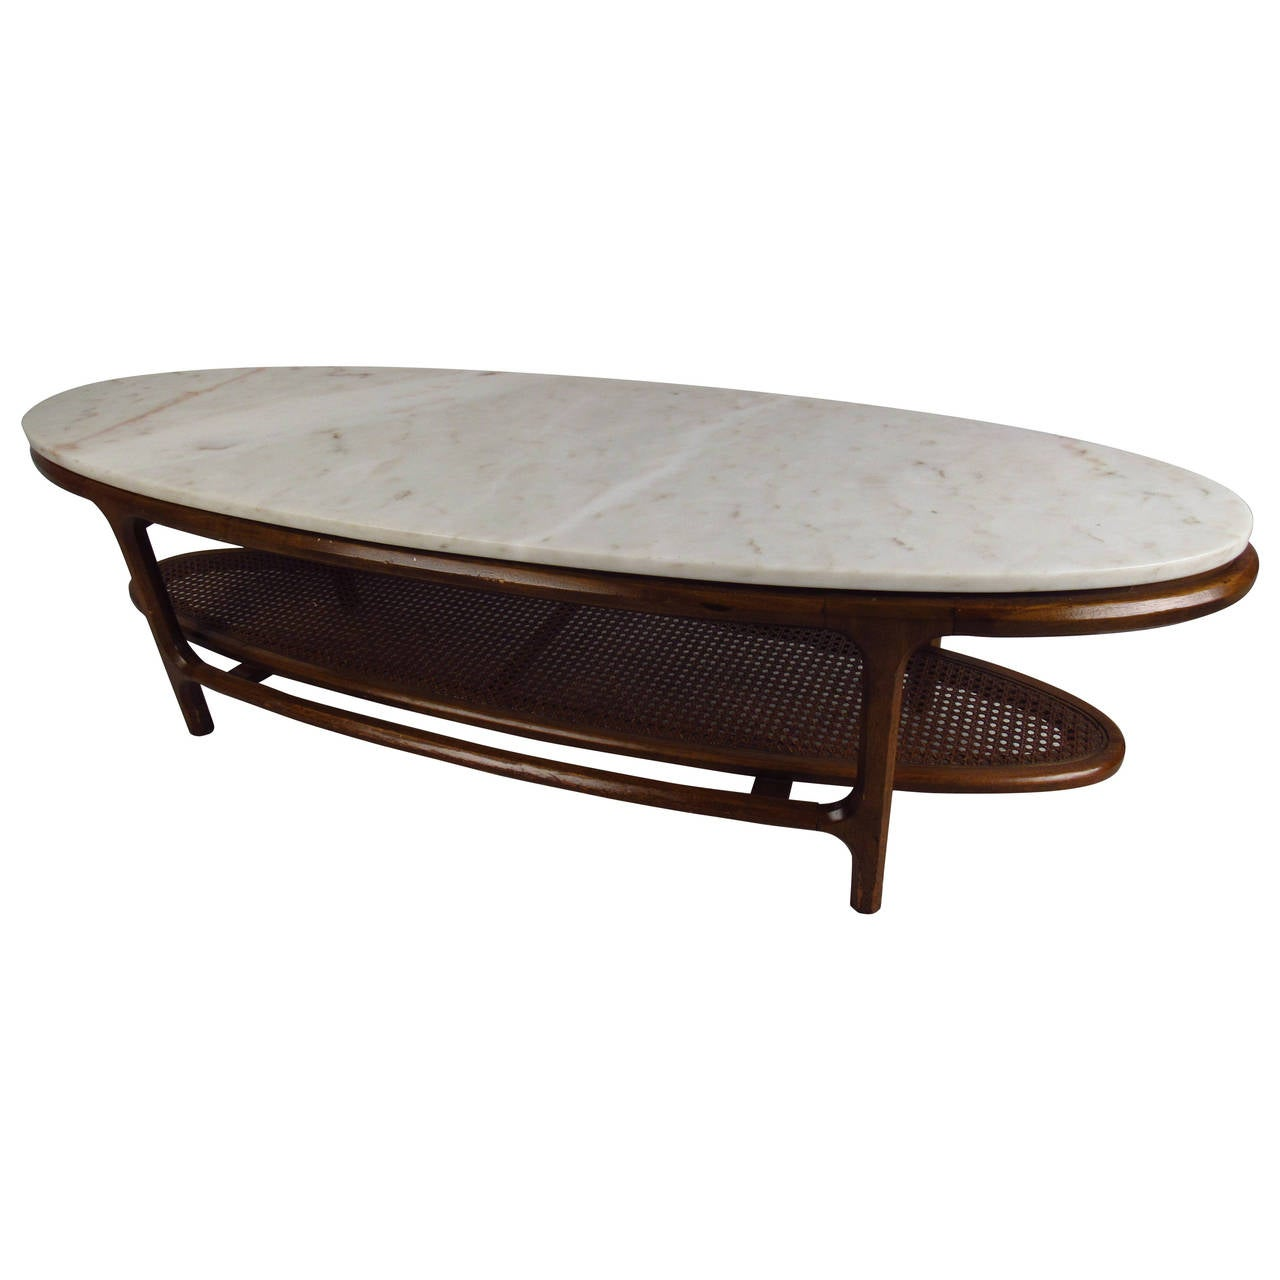 Mid Century Modern Marble Top Coffee Table With Cane Shelf For Sale At 1stdibs: stone coffee table top